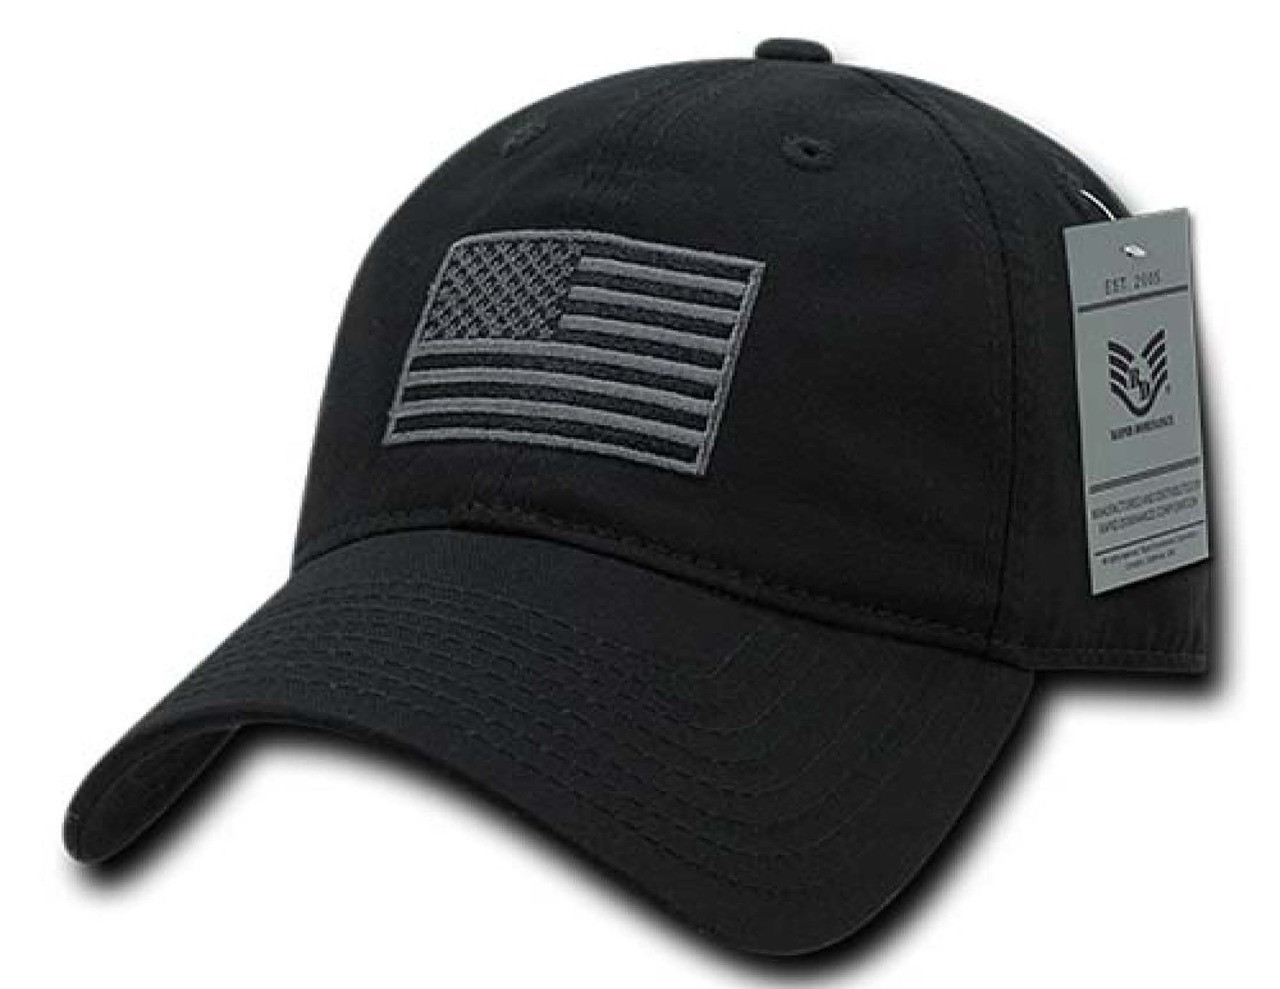 9ccd68f5bd4 ... Black US American Flag Patch United States America Polo Tonal Baseball  Hat Cap fantastic savings 60757 . ...